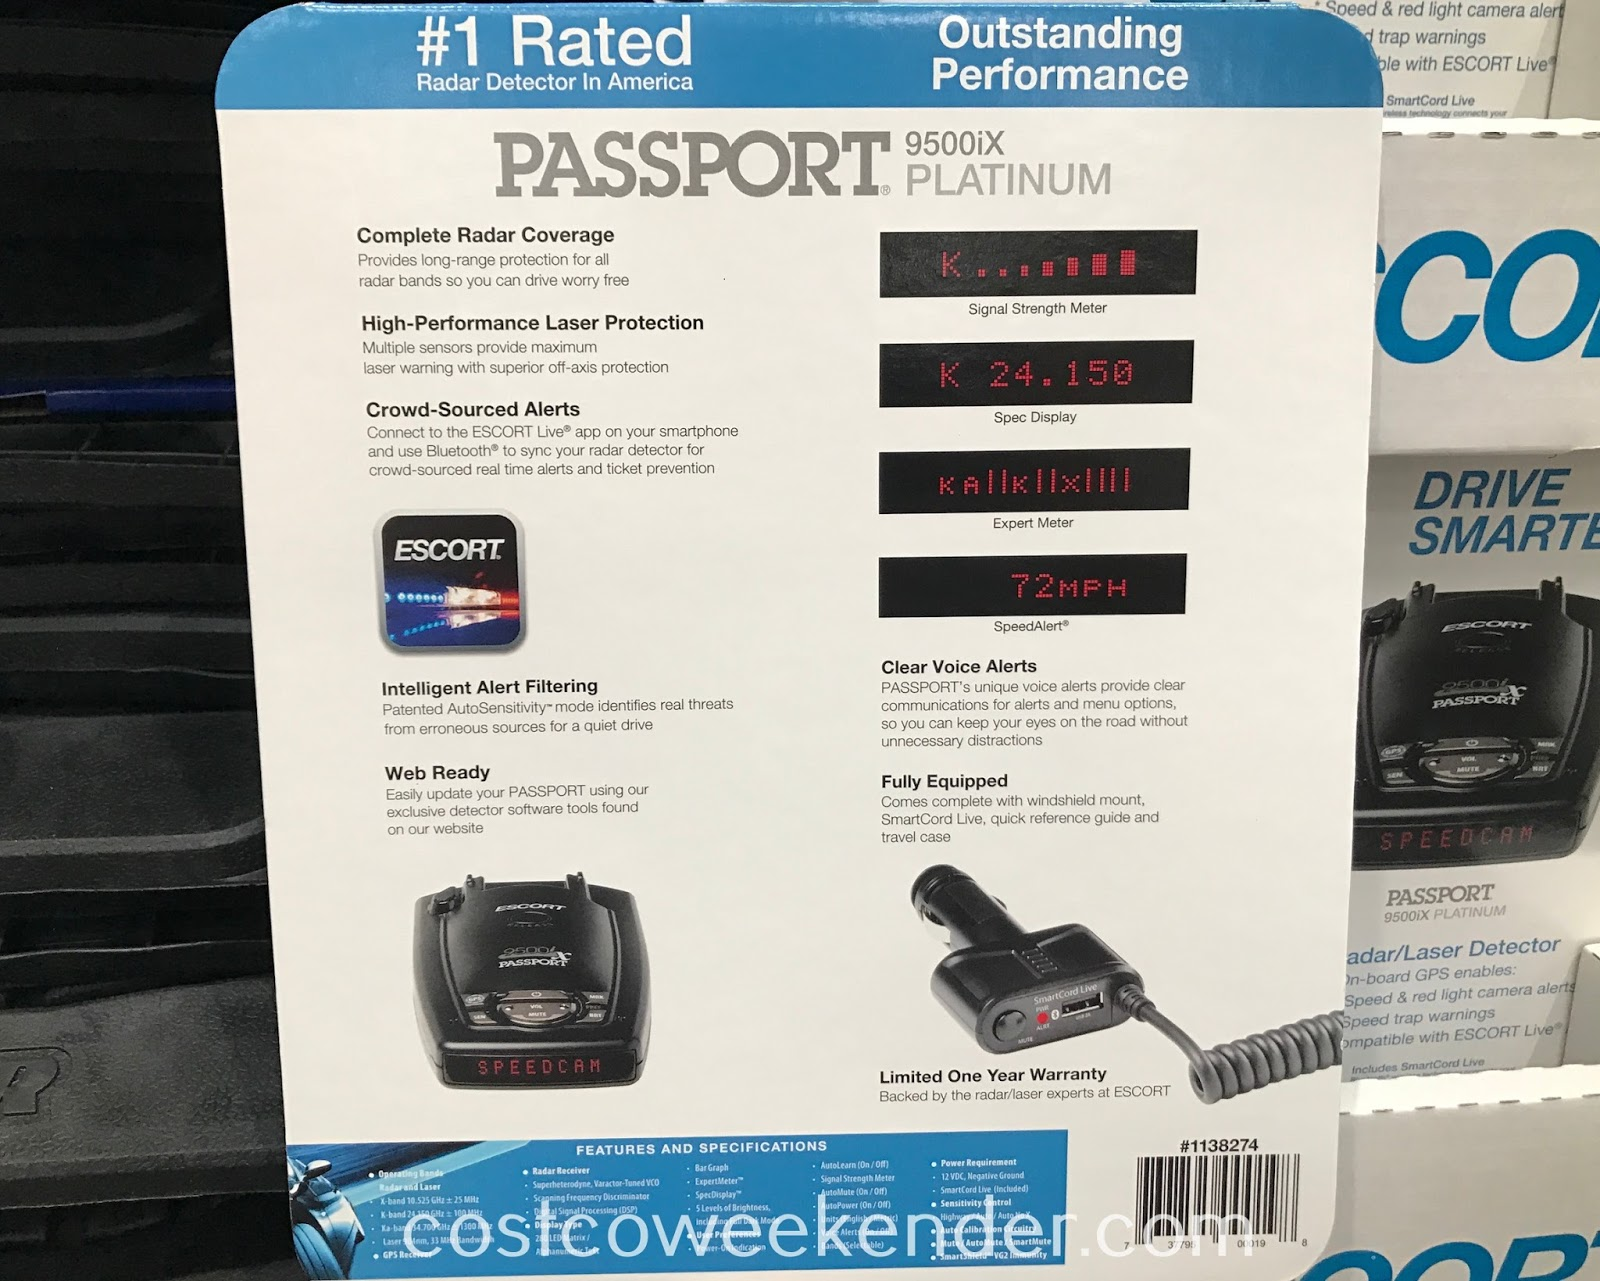 Costco 1138274 - Escort Passport 9500IX Platinum Radar/Laser Detector: great for any car and driver